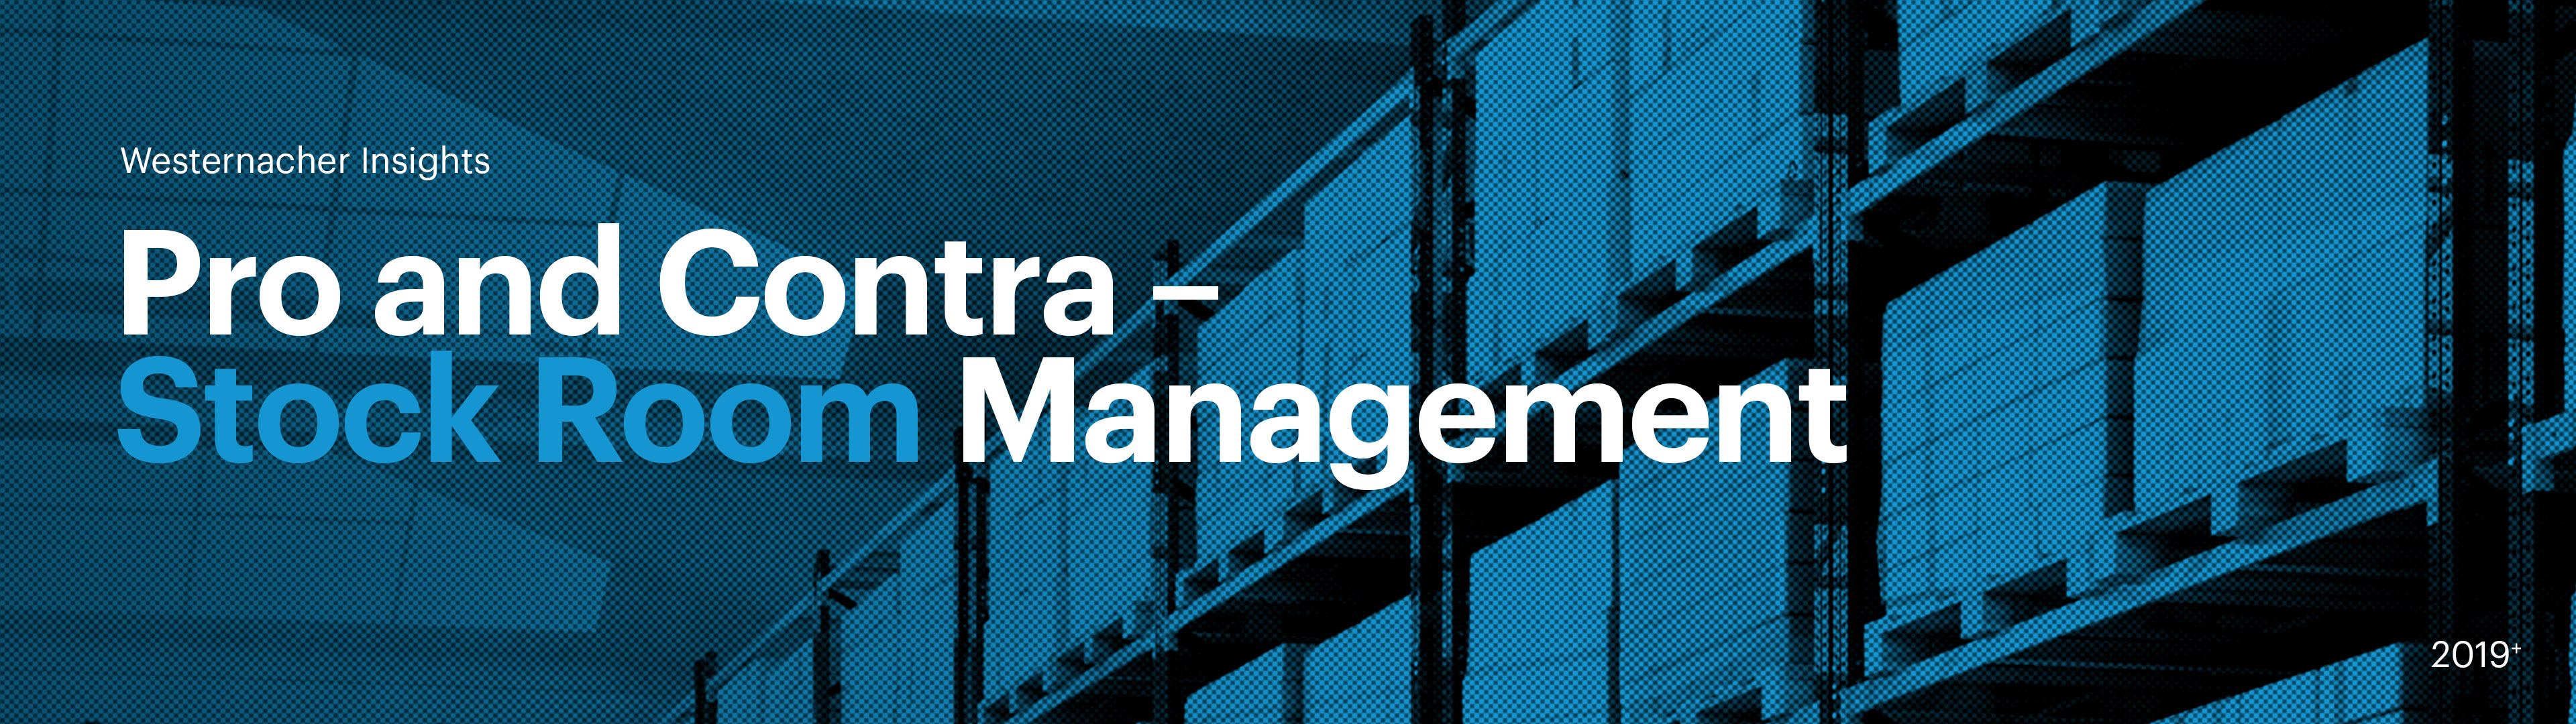 Westernacher Insights: Stock Room Management | westernacher-consulting.com